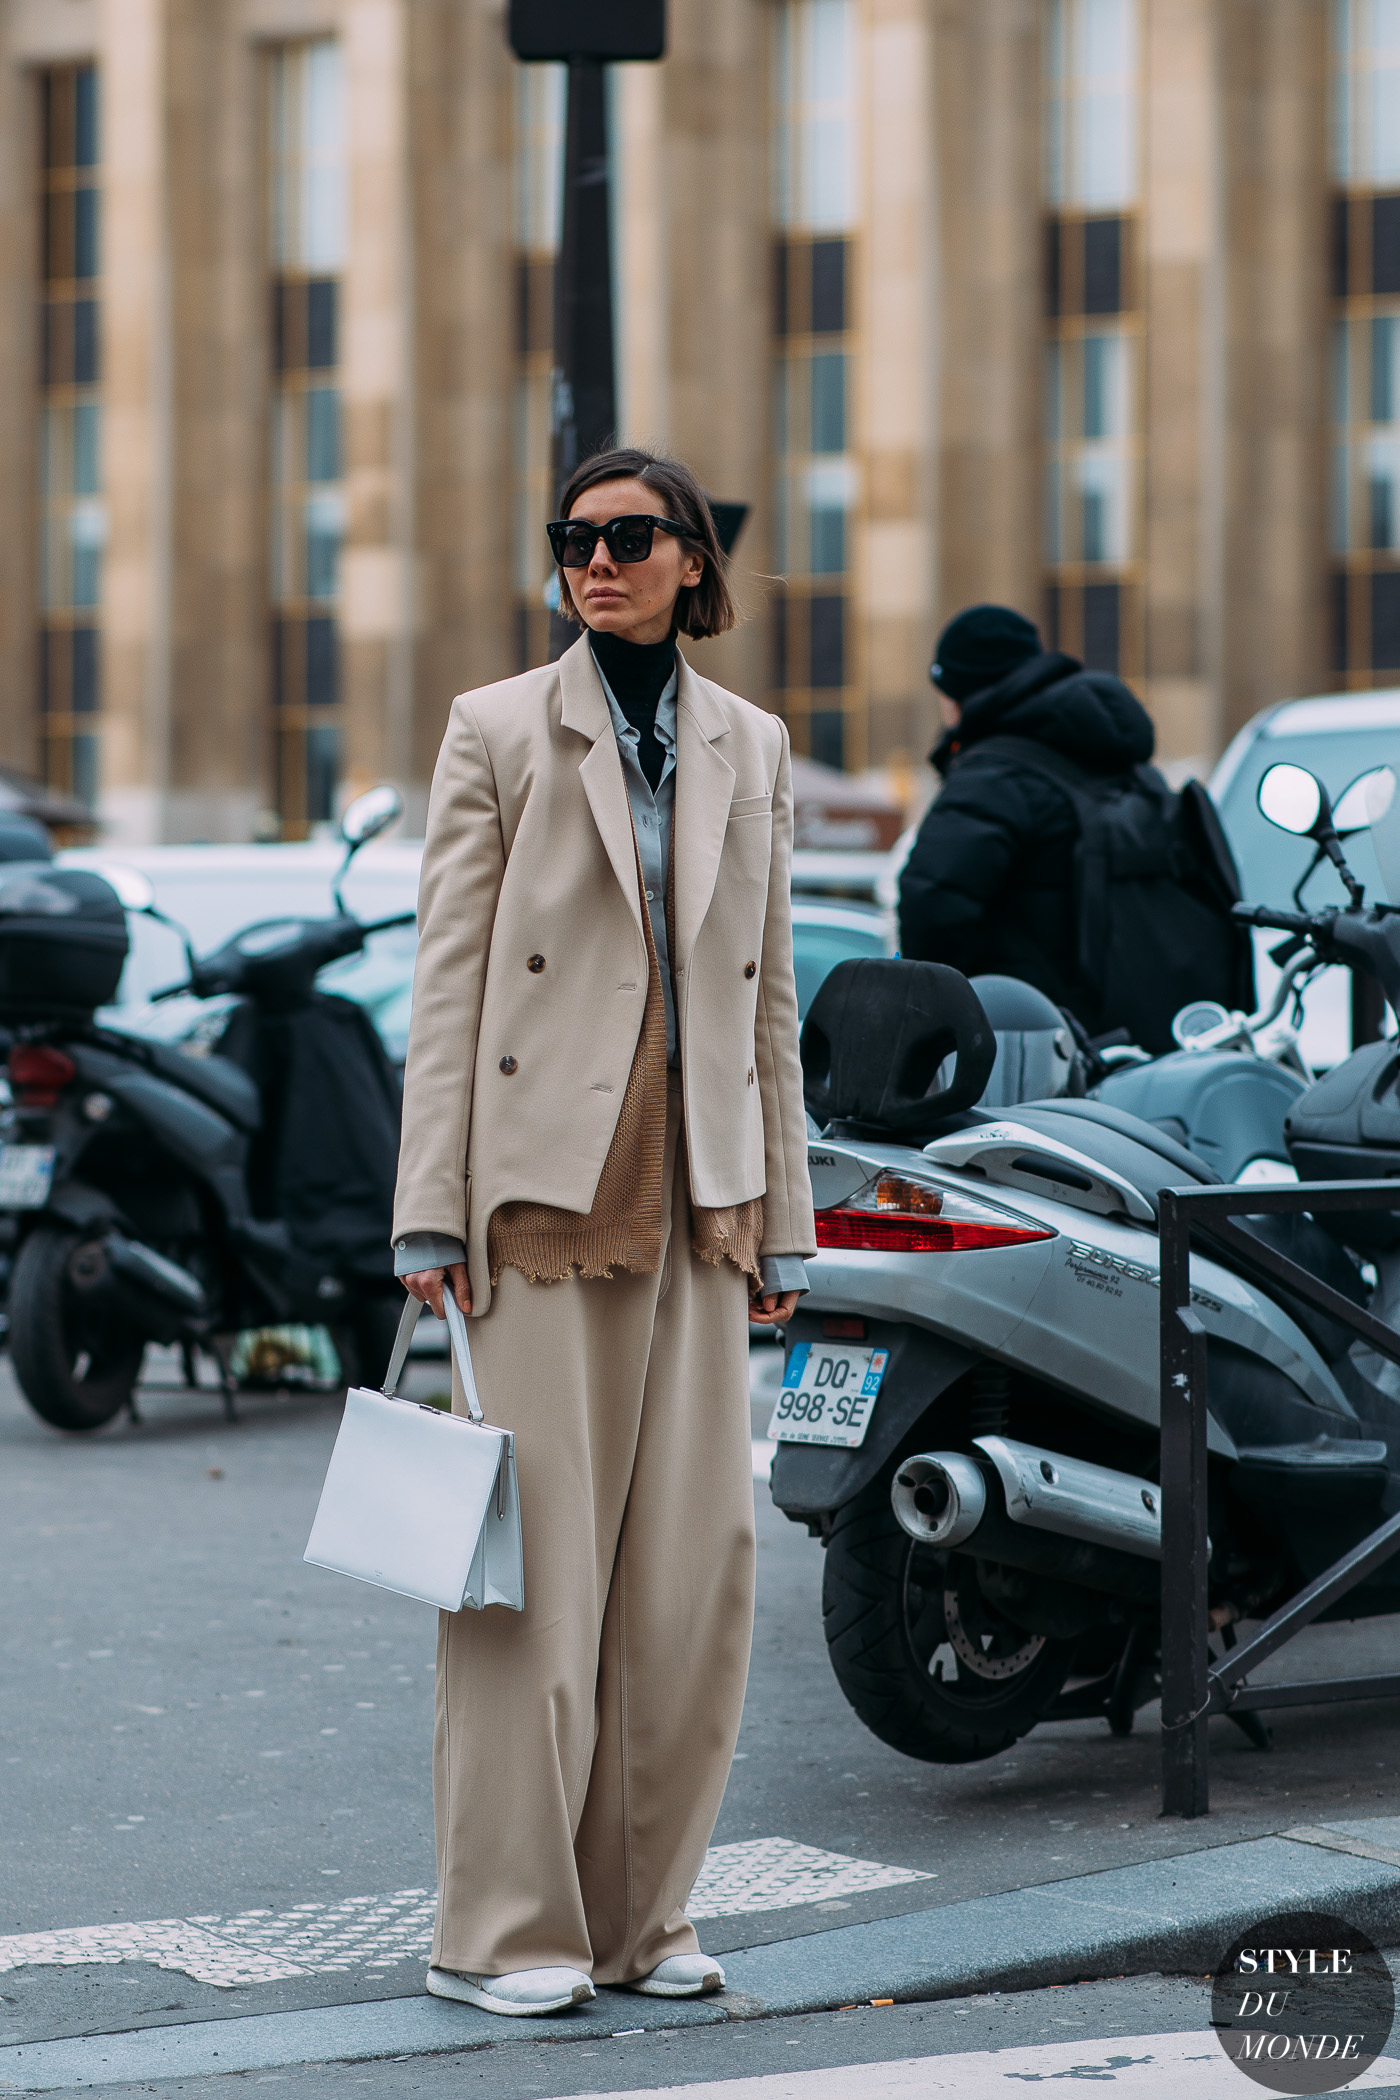 Julie Pelipas by STYLEDUMONDE Street Style Fashion Photography FW18 20180303_48A9633